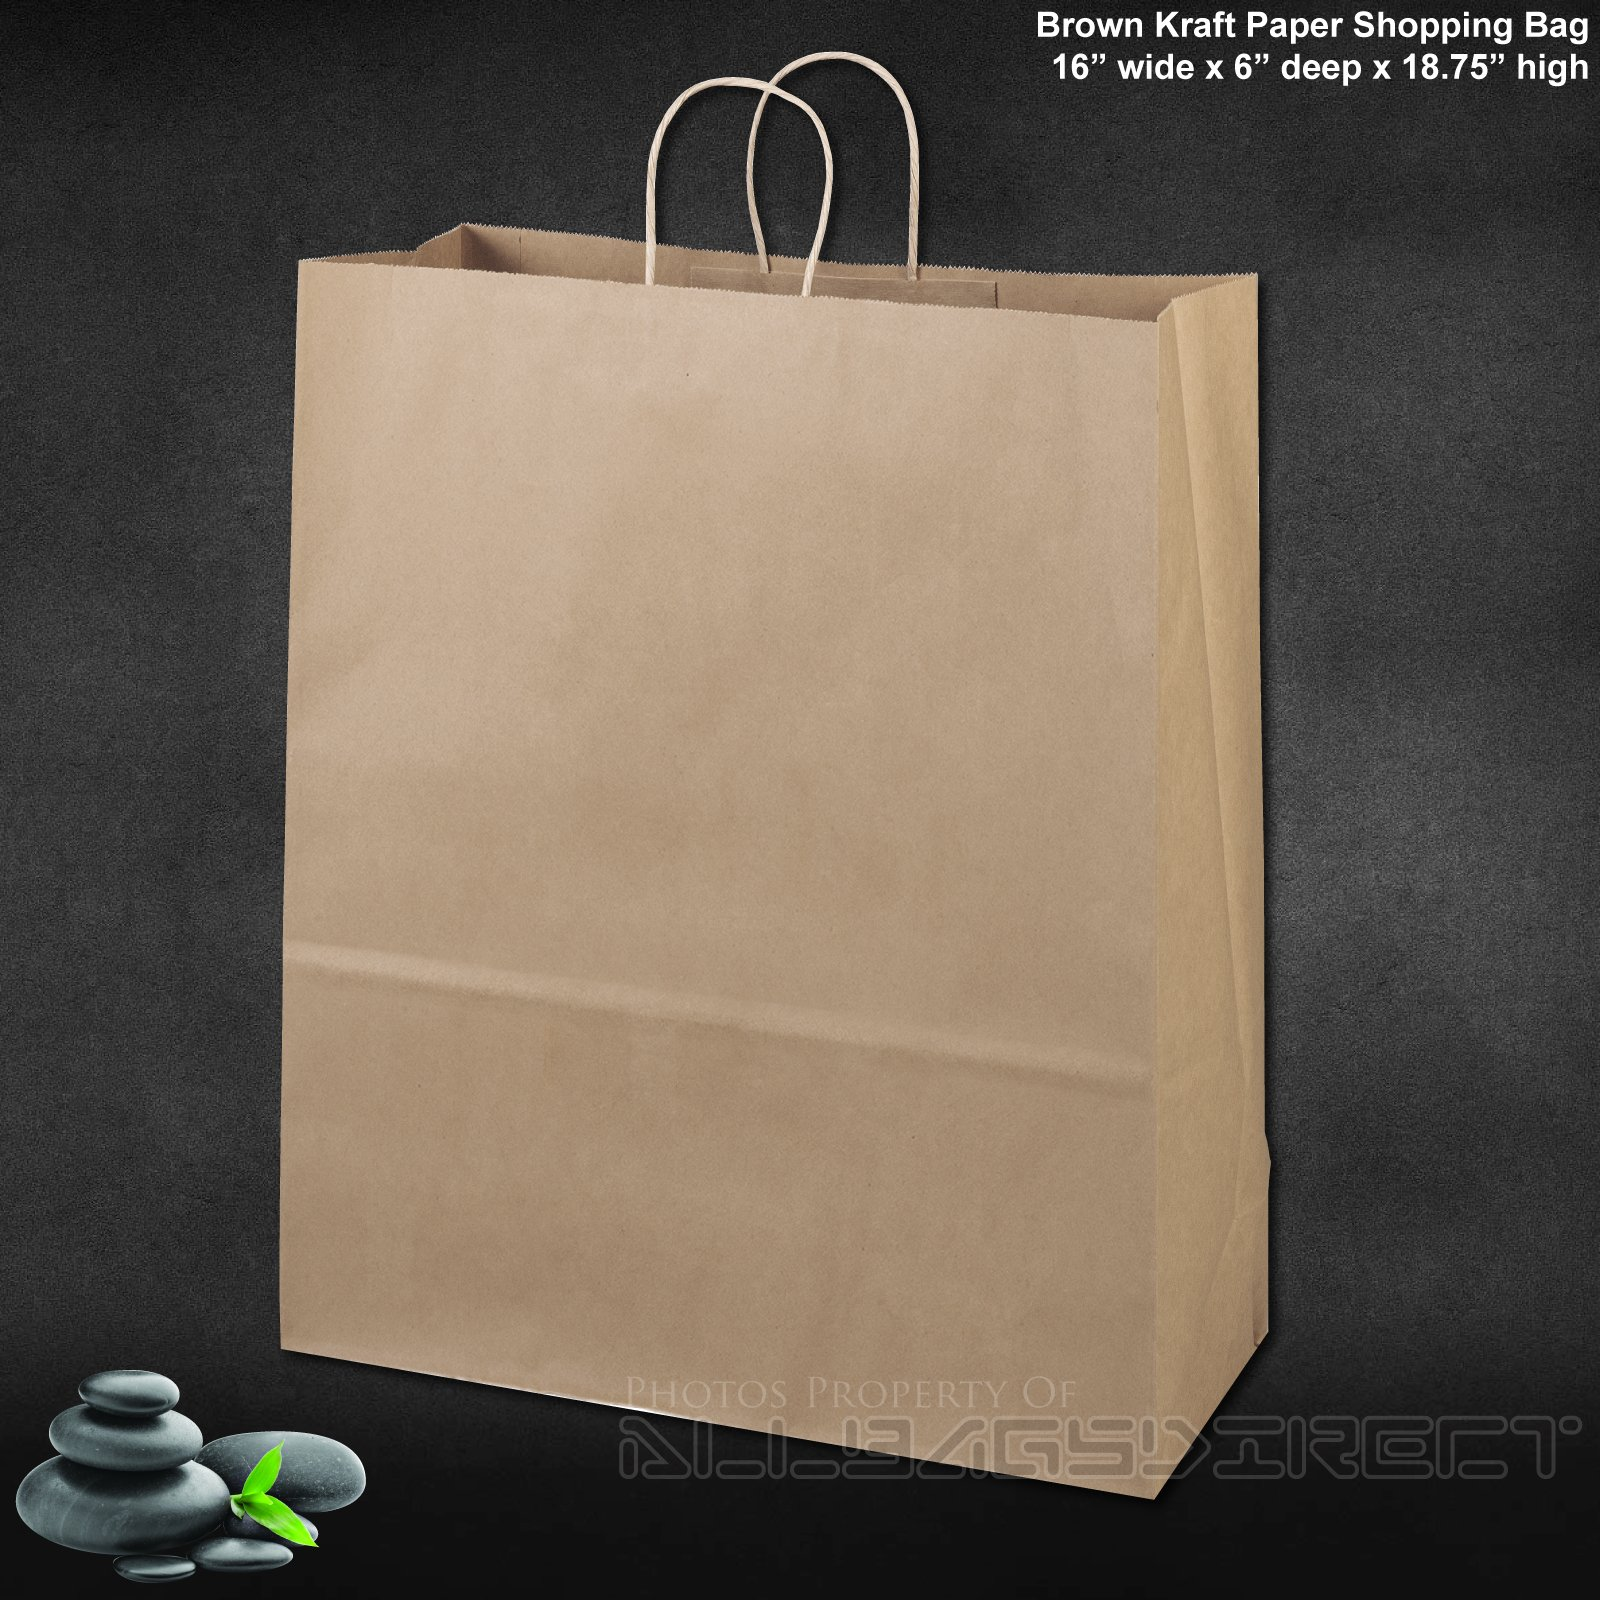 Flexicore Packaging 16''x6''x19'' - 100 Pcs - Brown Kraft Paper Bags 95% Post Consumer Materials & FSC Certified